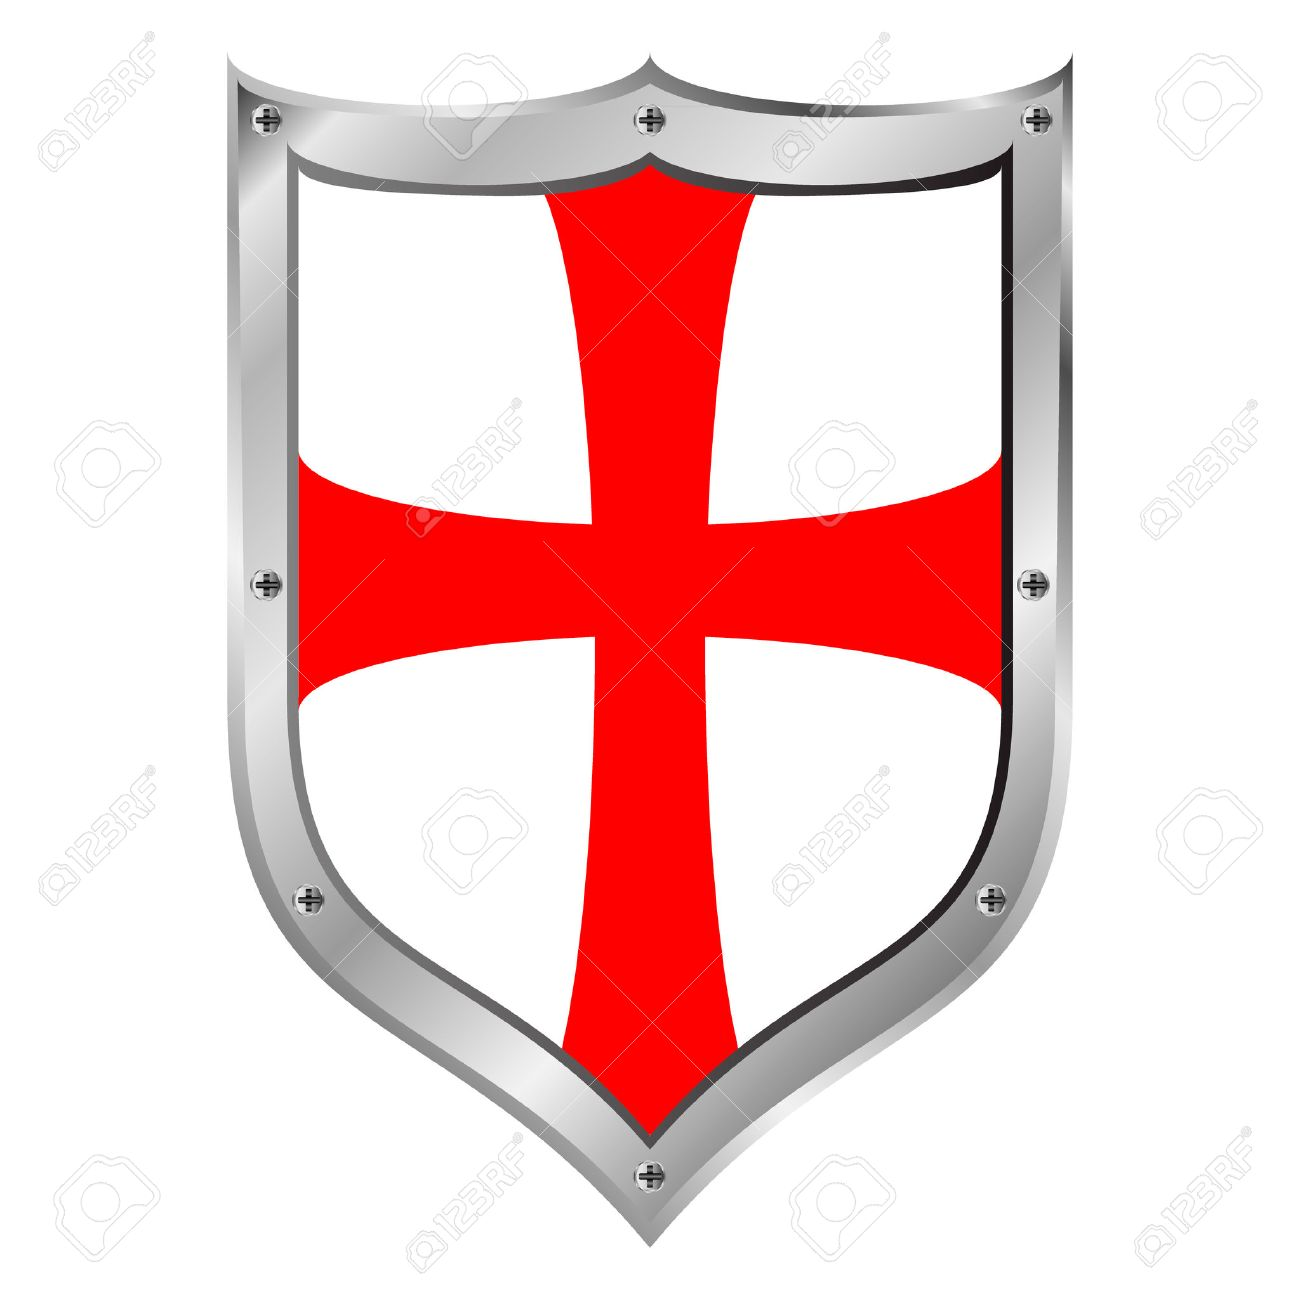 Knights Templar Shield On White Background Royalty Cliparts 1300x1300